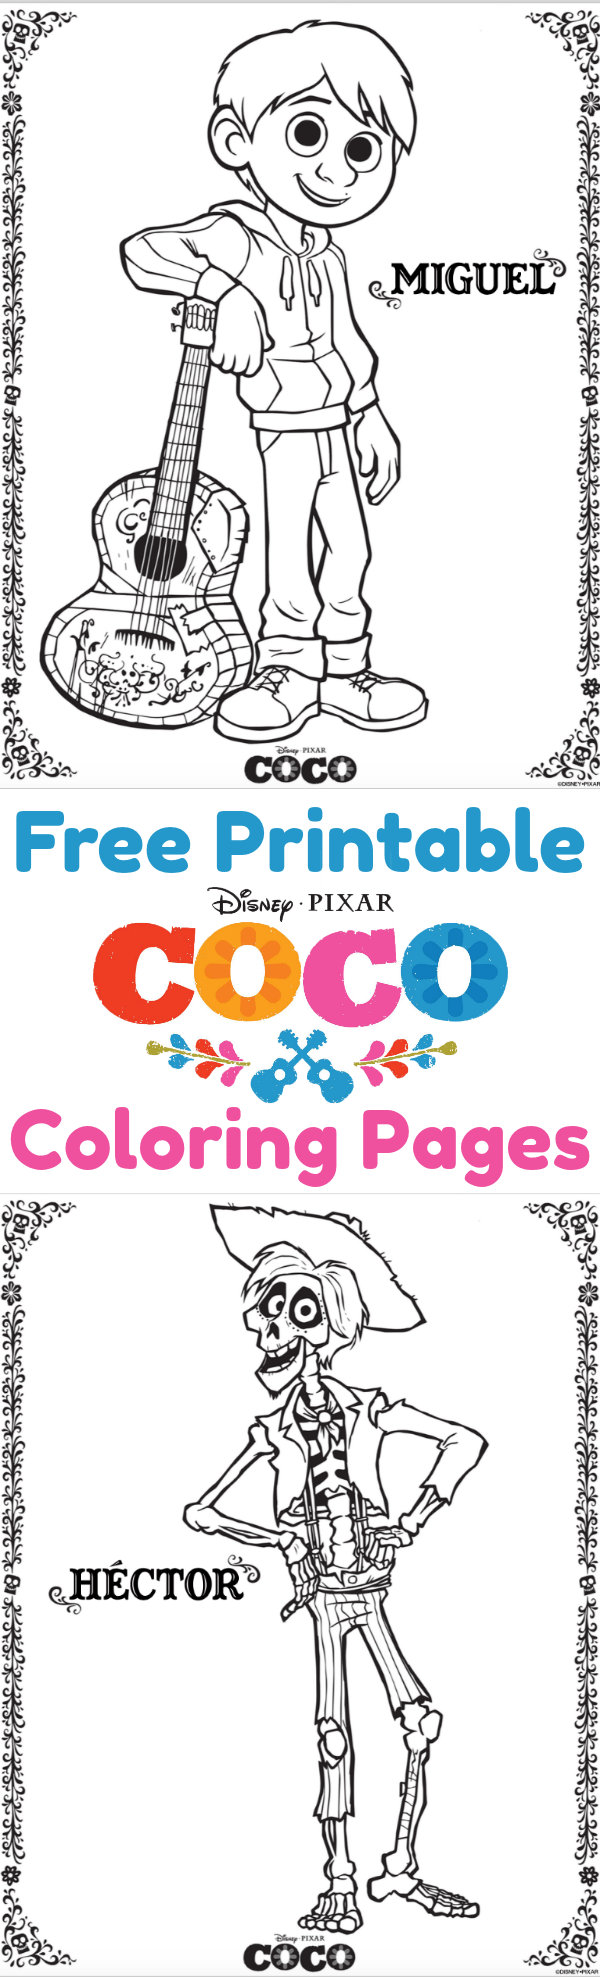 Free Printable Coco Coloring Pages Activity Pages And Movie Review